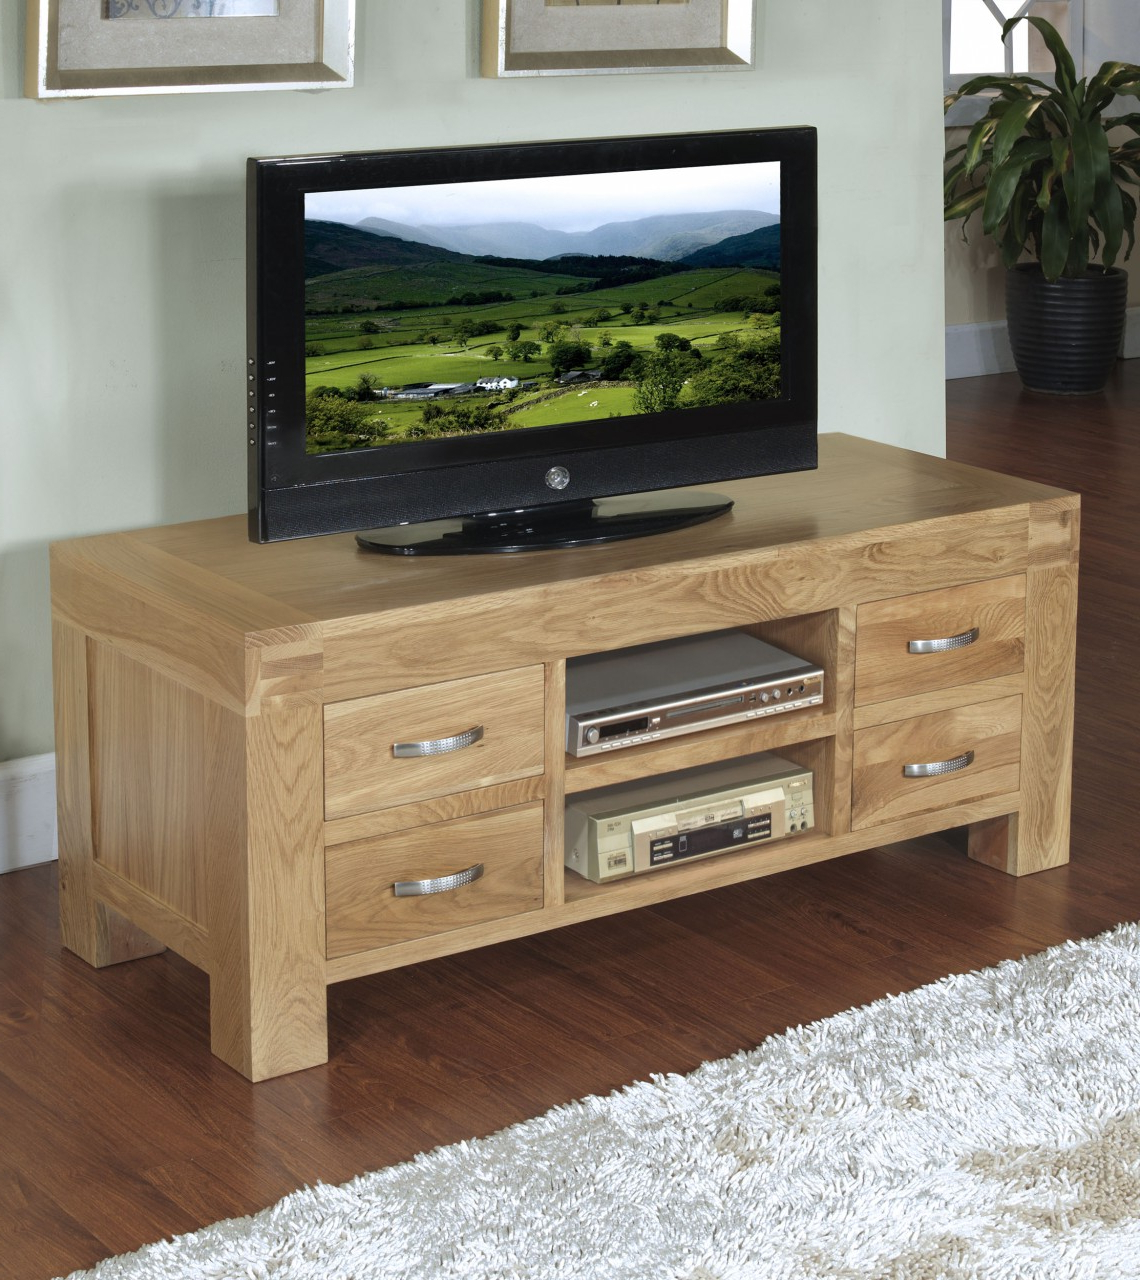 Oak Tv Cabinets For Flat Screens In Popular Reclaimed Wood Tv Stands Natural Oak Stand Consoles For Flat Screens (Gallery 8 of 20)